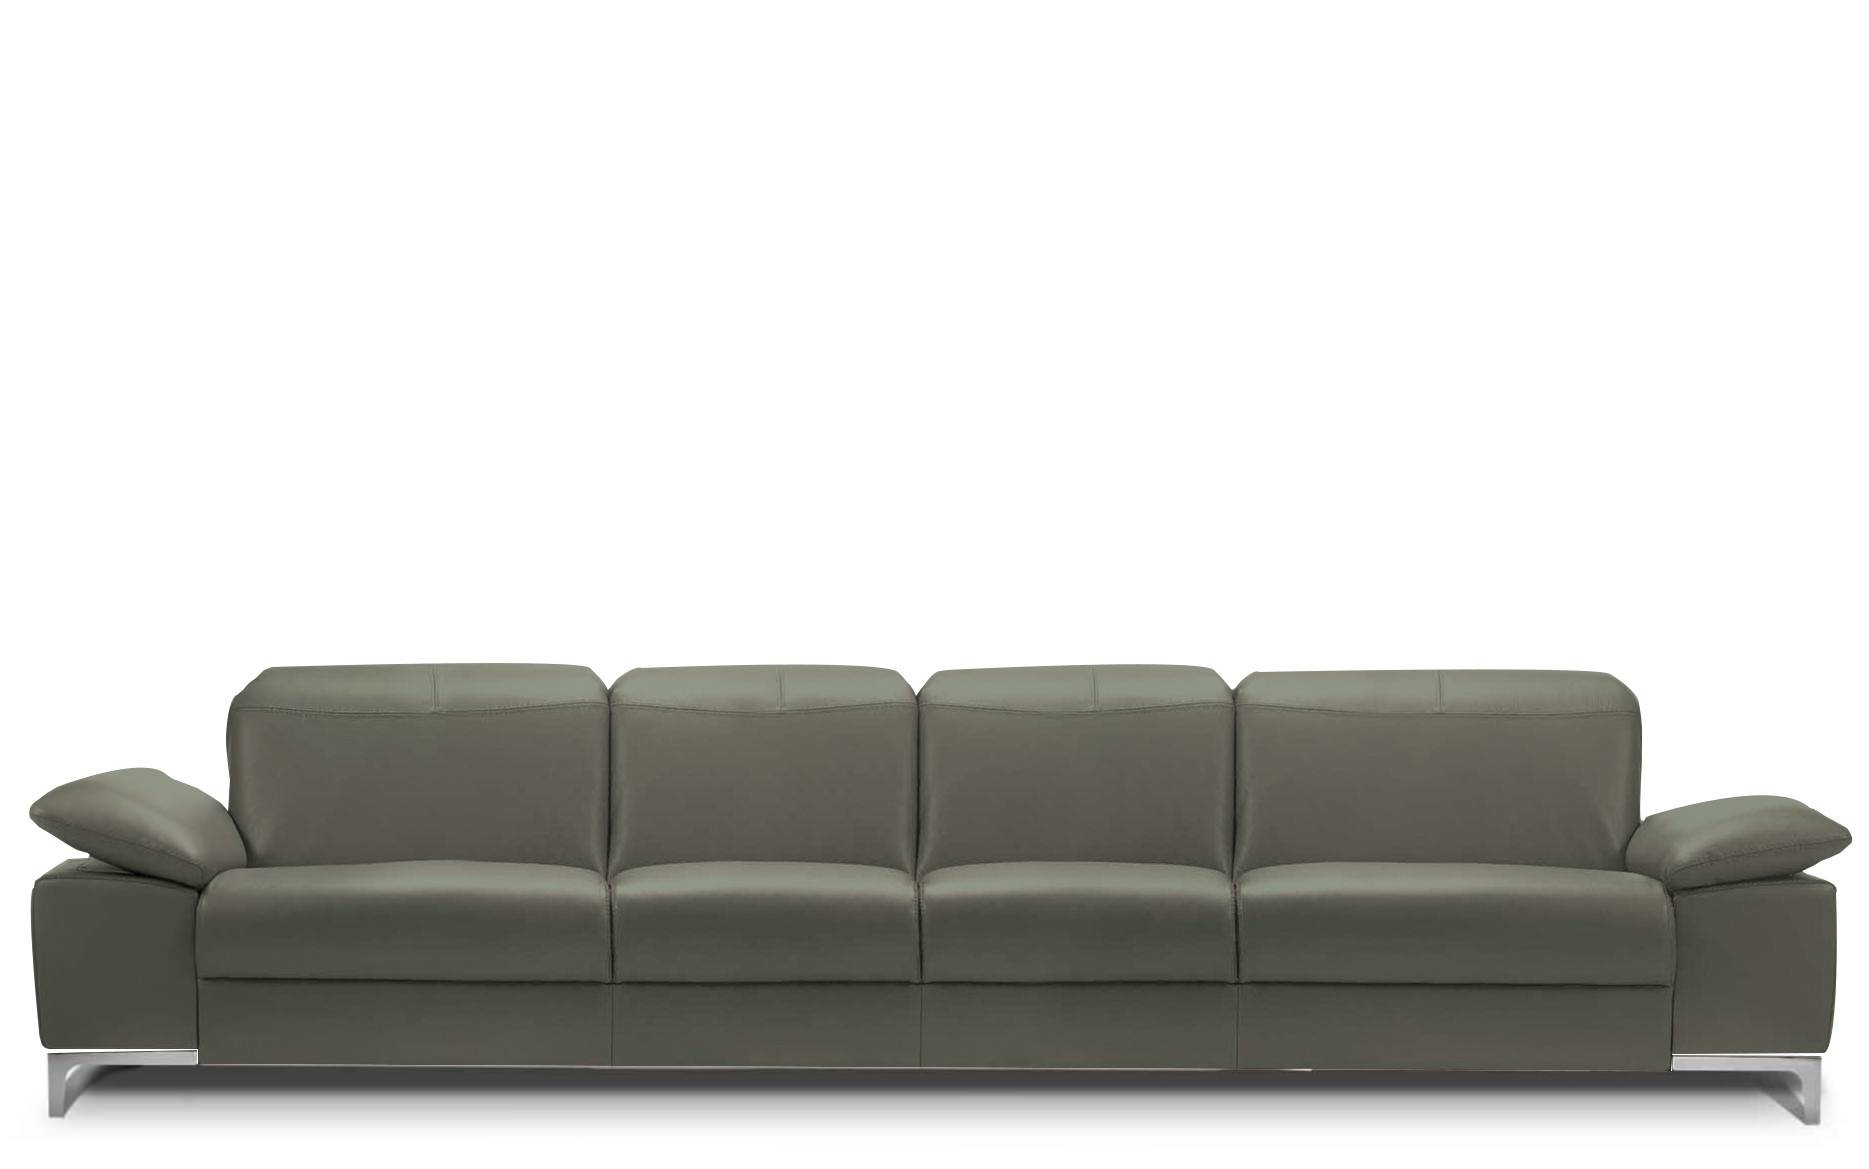 Rom Chronos 4 Seater Leather Sofa | Buy At Kontenta inside 4 Seat Sofas (Image 26 of 30)